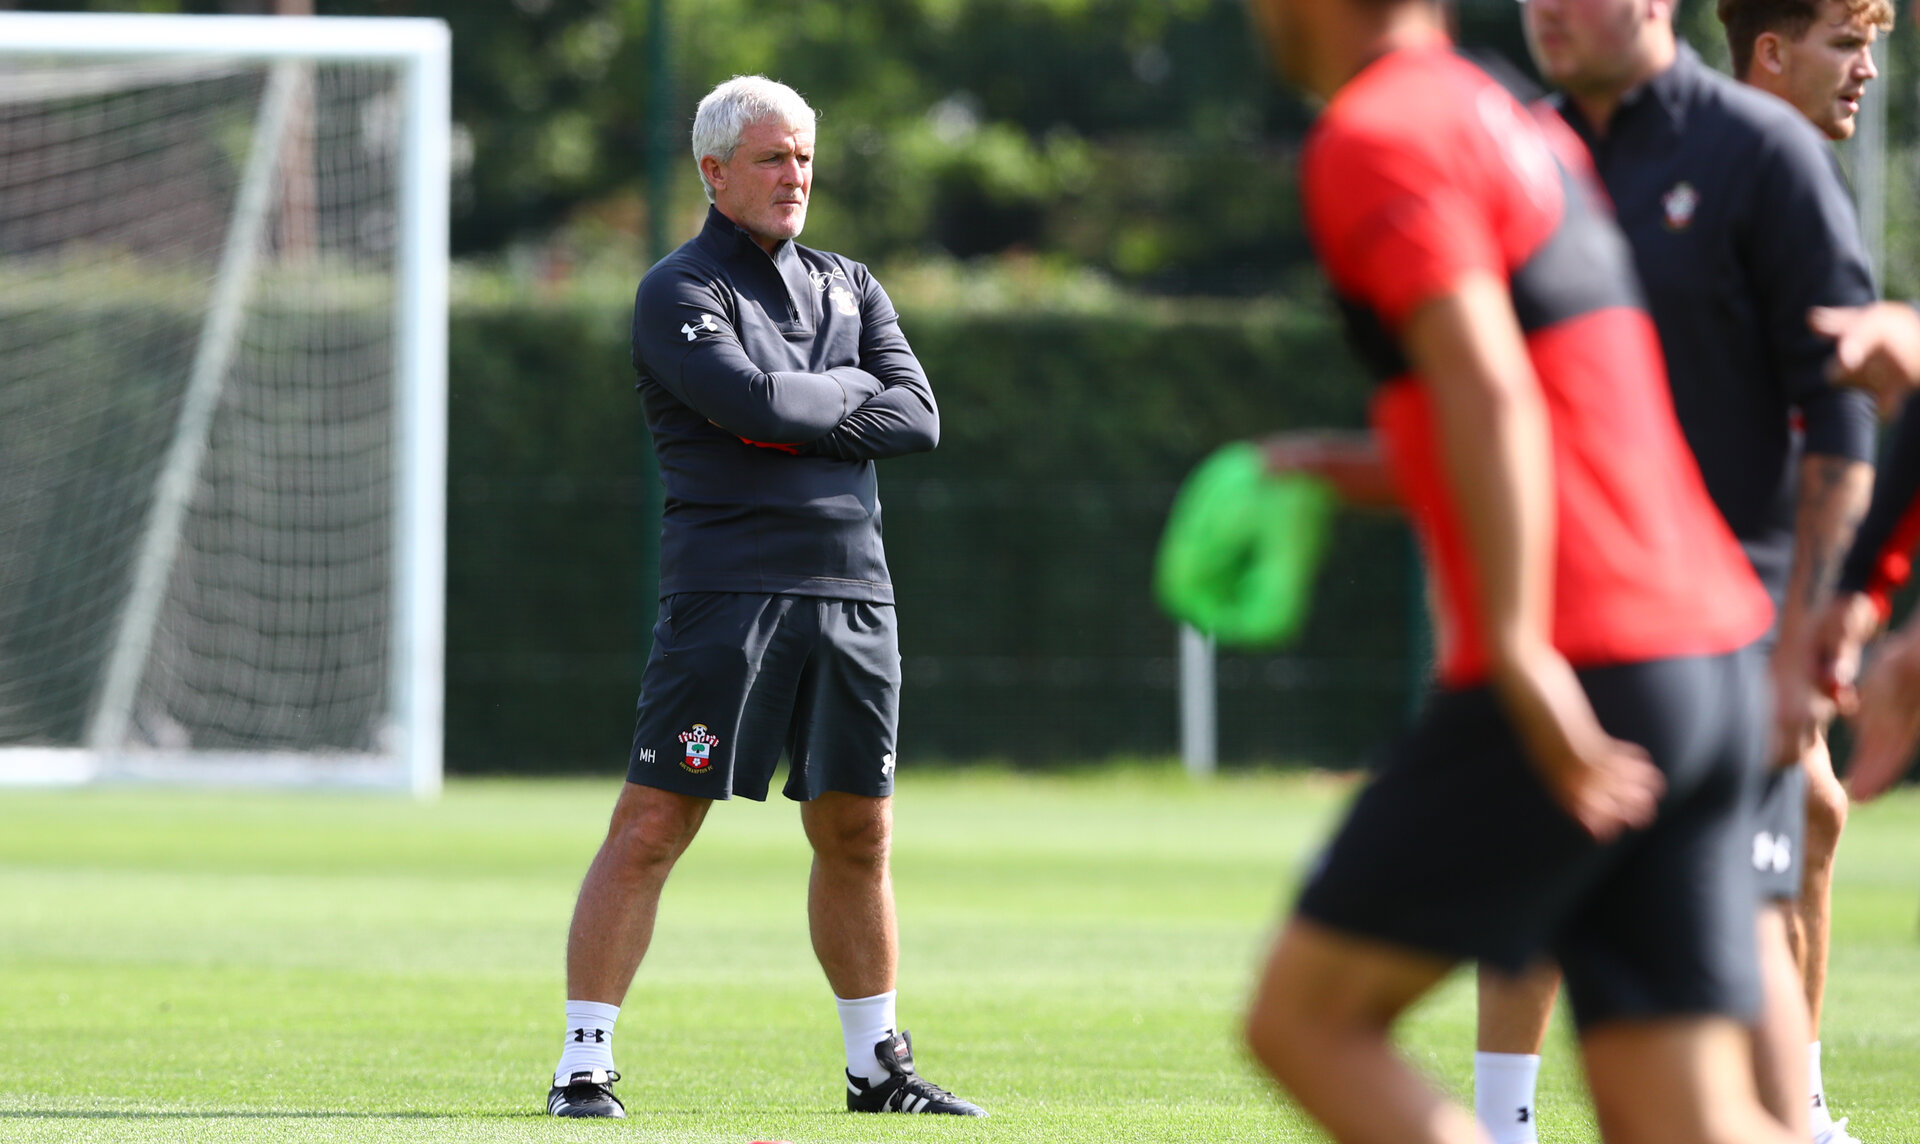 SOUTHAMPTON, ENGLAND - AUGUST 23: Mark Hughes during a Southampton FC training session at the Staplewood Campus on August 23, 2018 in Southampton, England. (Photo by Matt Watson/Southampton FC via Getty Images)